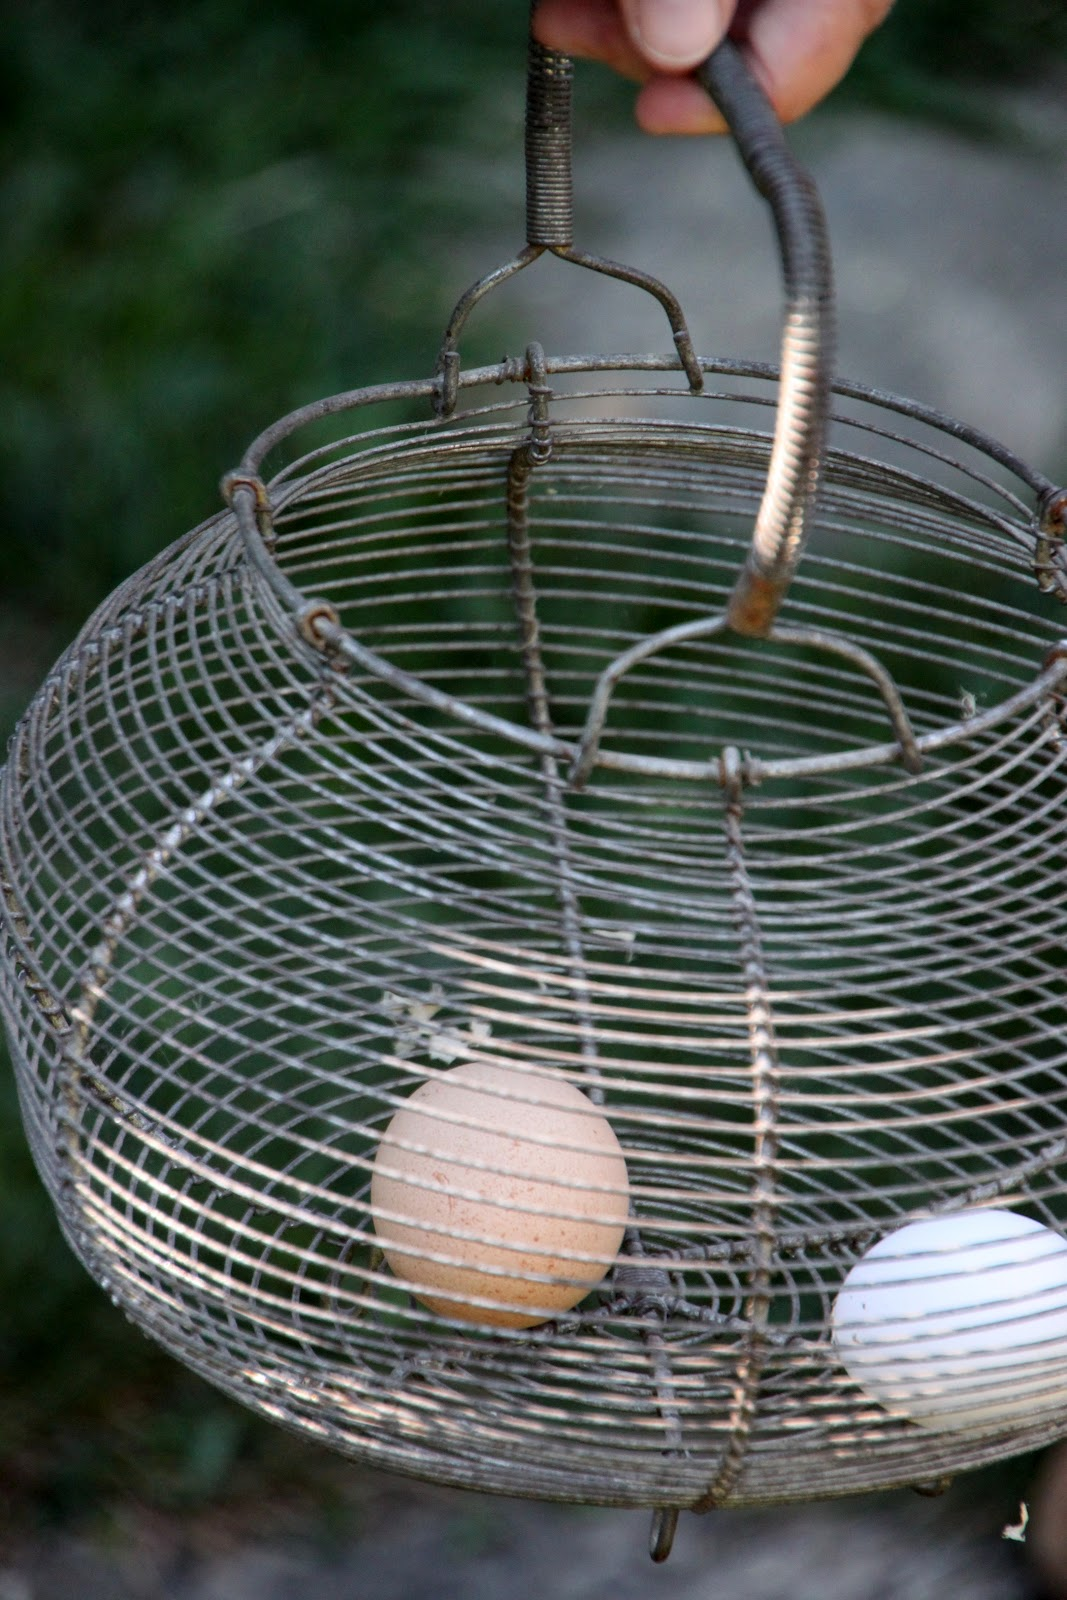 10 reasons for decline in backyard chicken egg production